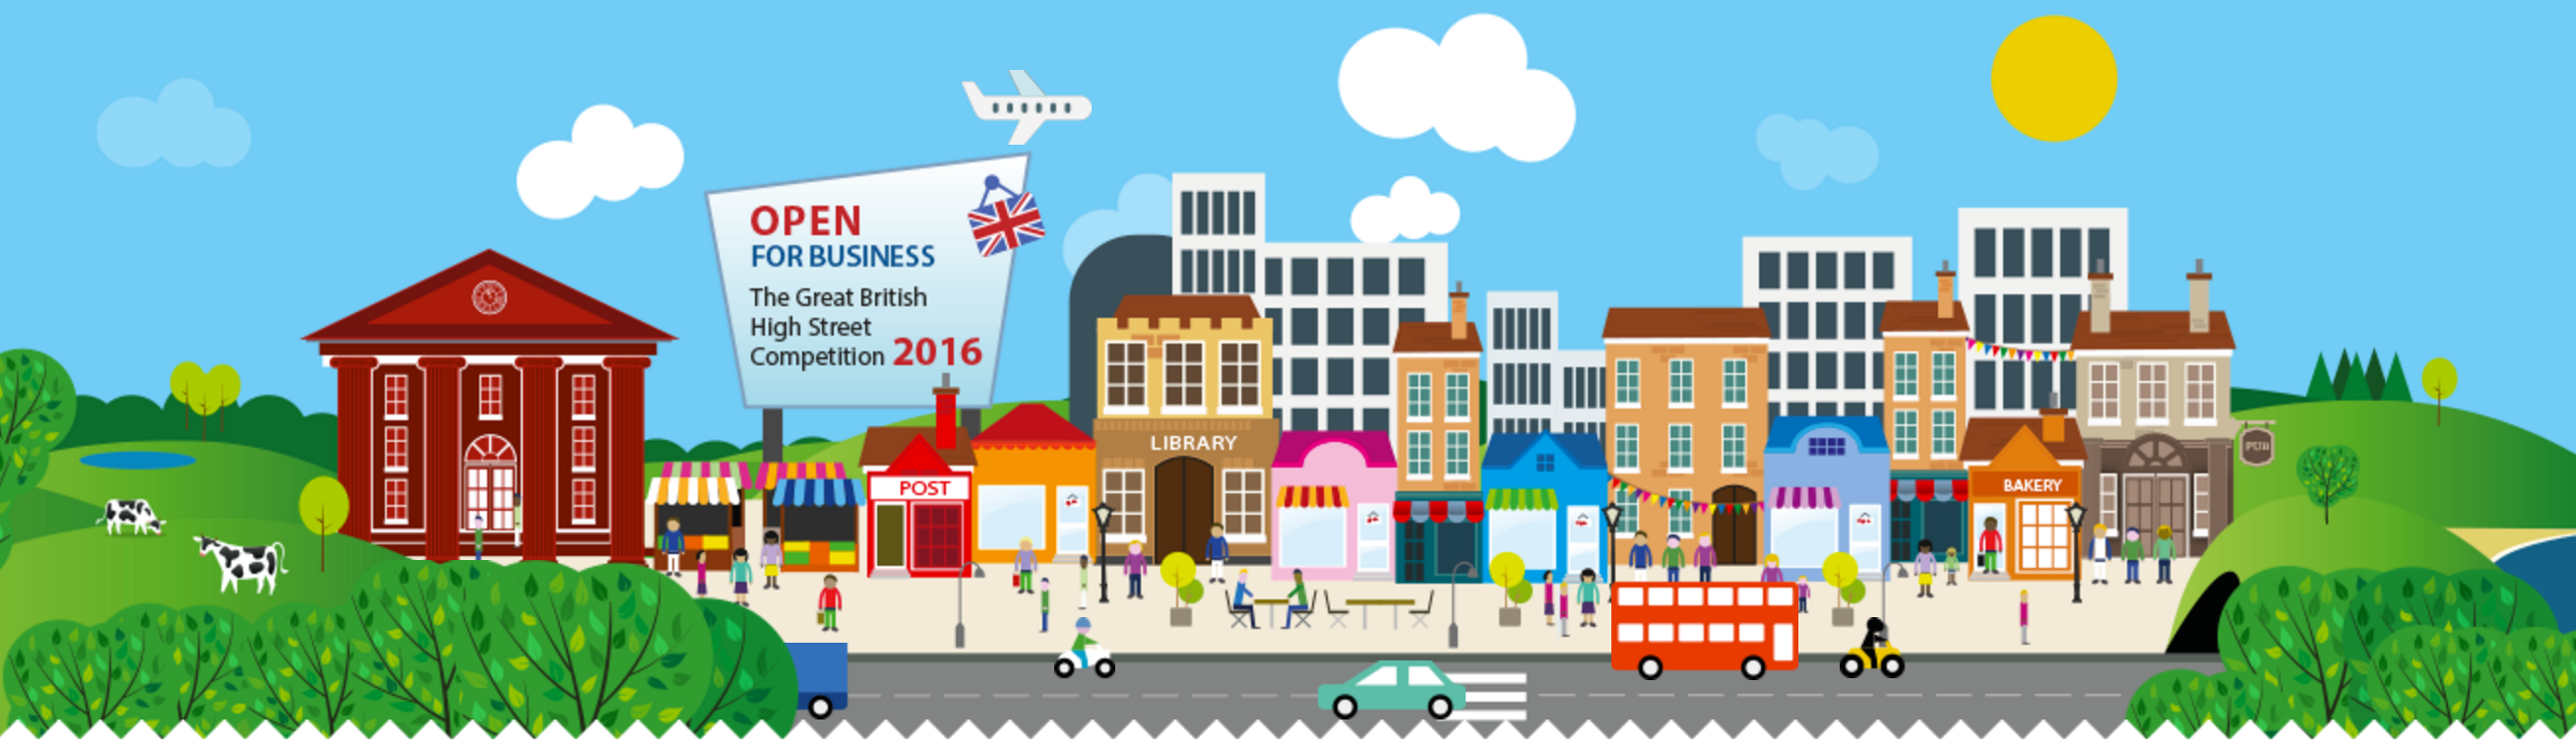 The Great British High Street Competition 2016